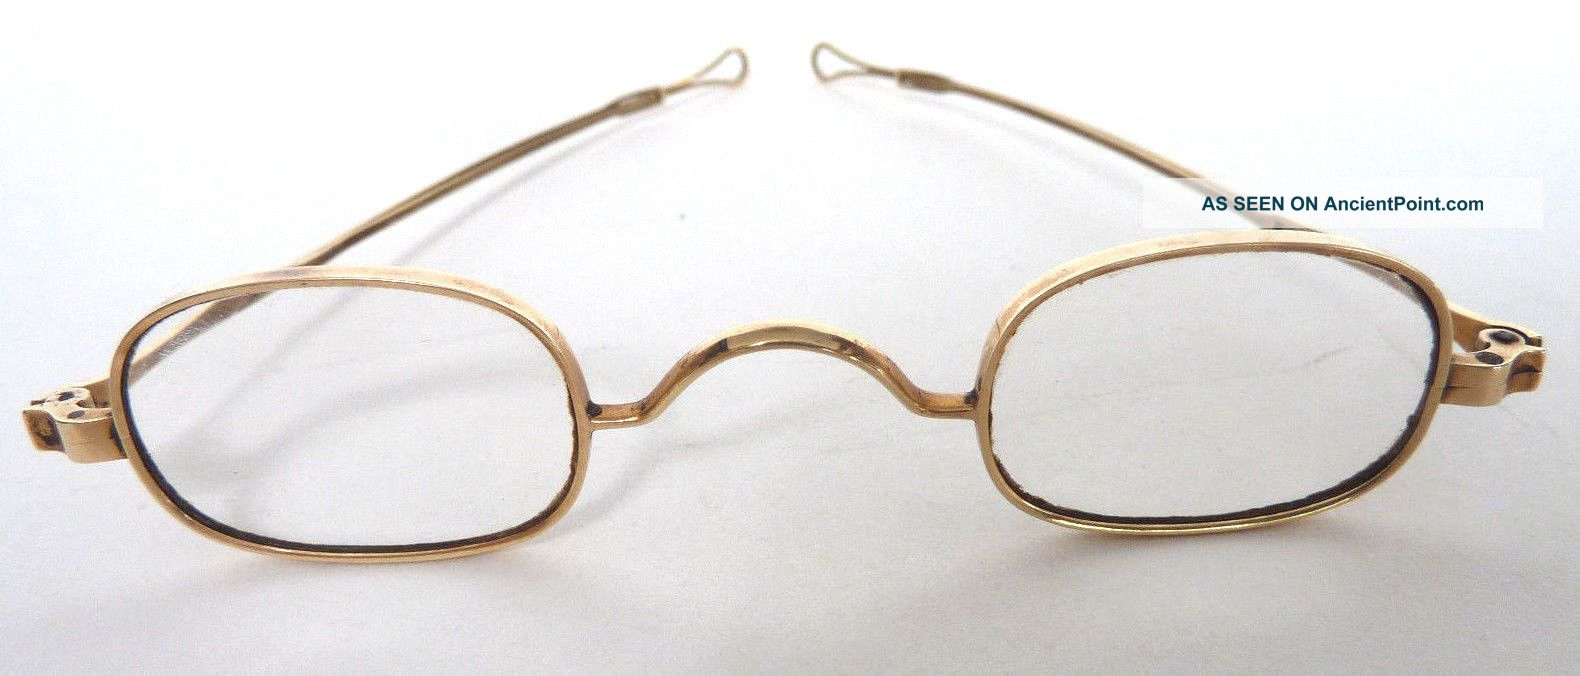 Gold Spectacles Belonged To Rev.  Elijah Sutton,  Jefferson County,  Ky,  19th C 14k Optical photo